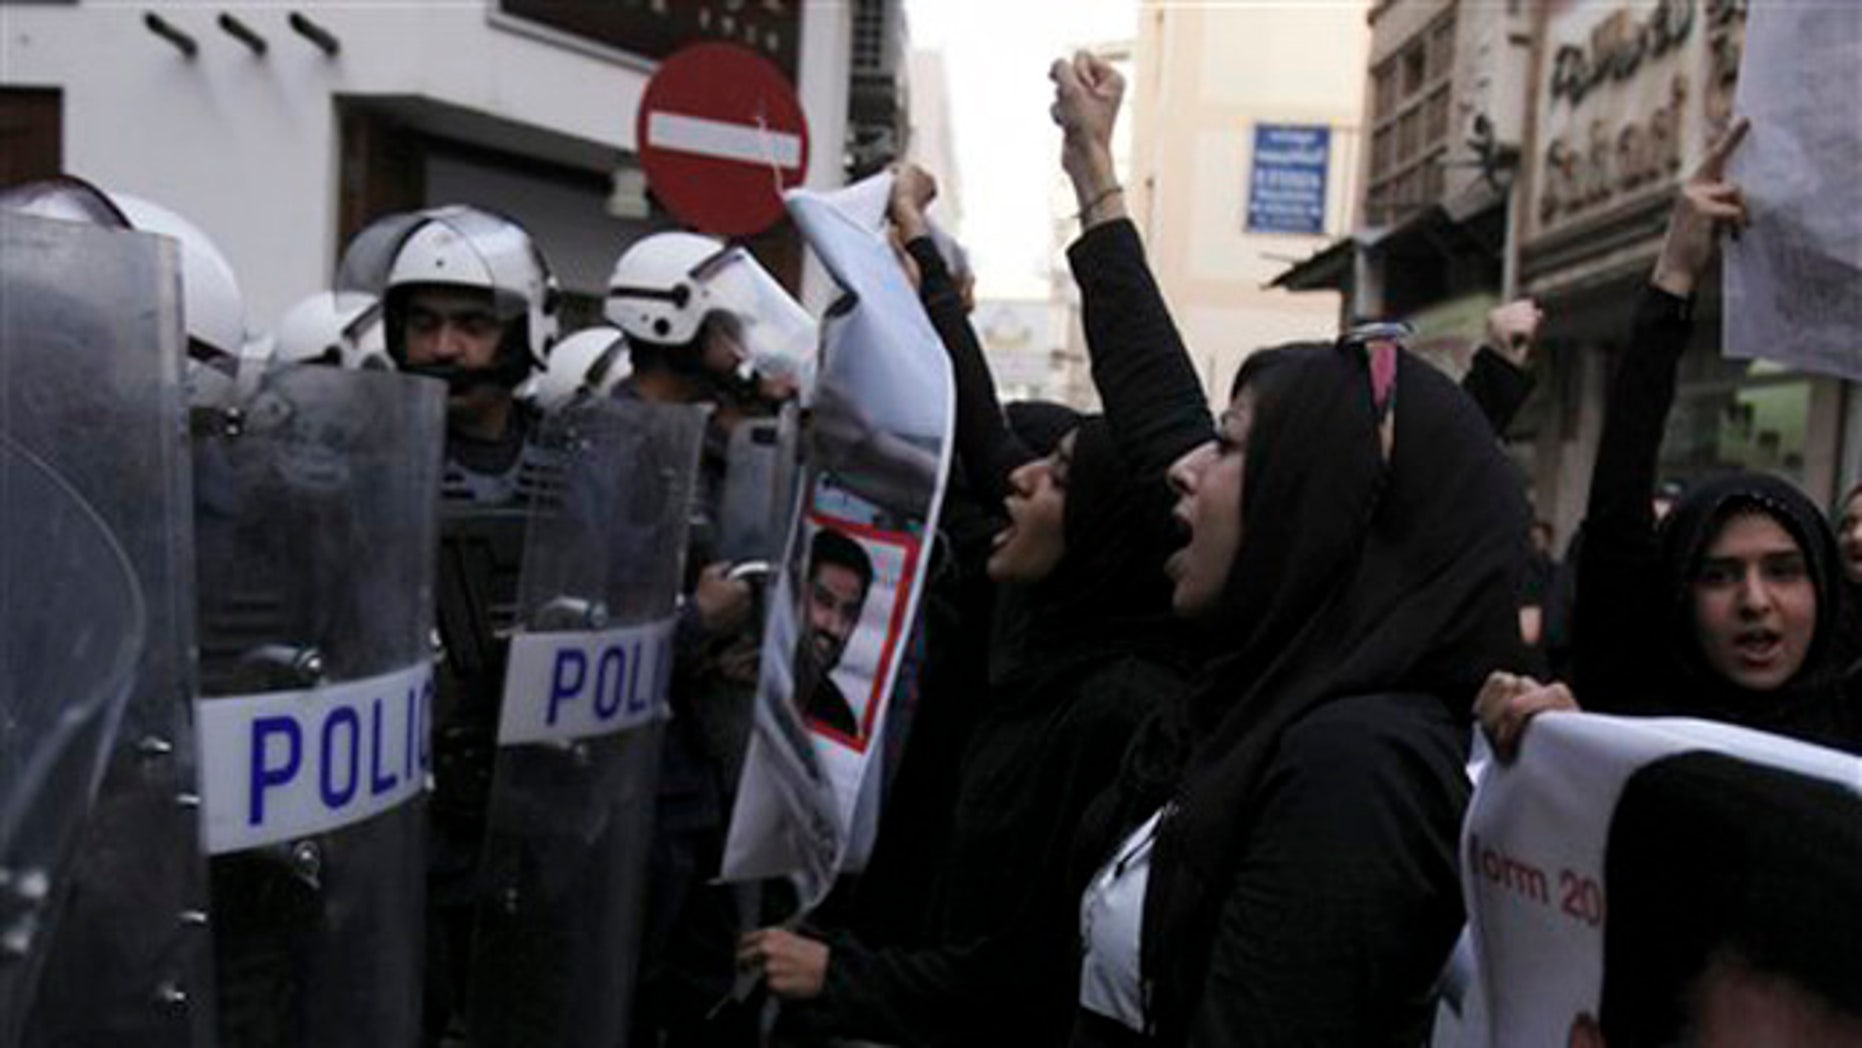 April 18, 2012: Bahraini anti-government activist Zainab al-Khawaja, second right, gestures and chants slogans in front of riot police during a protest in downtown Manama, Bahrain.